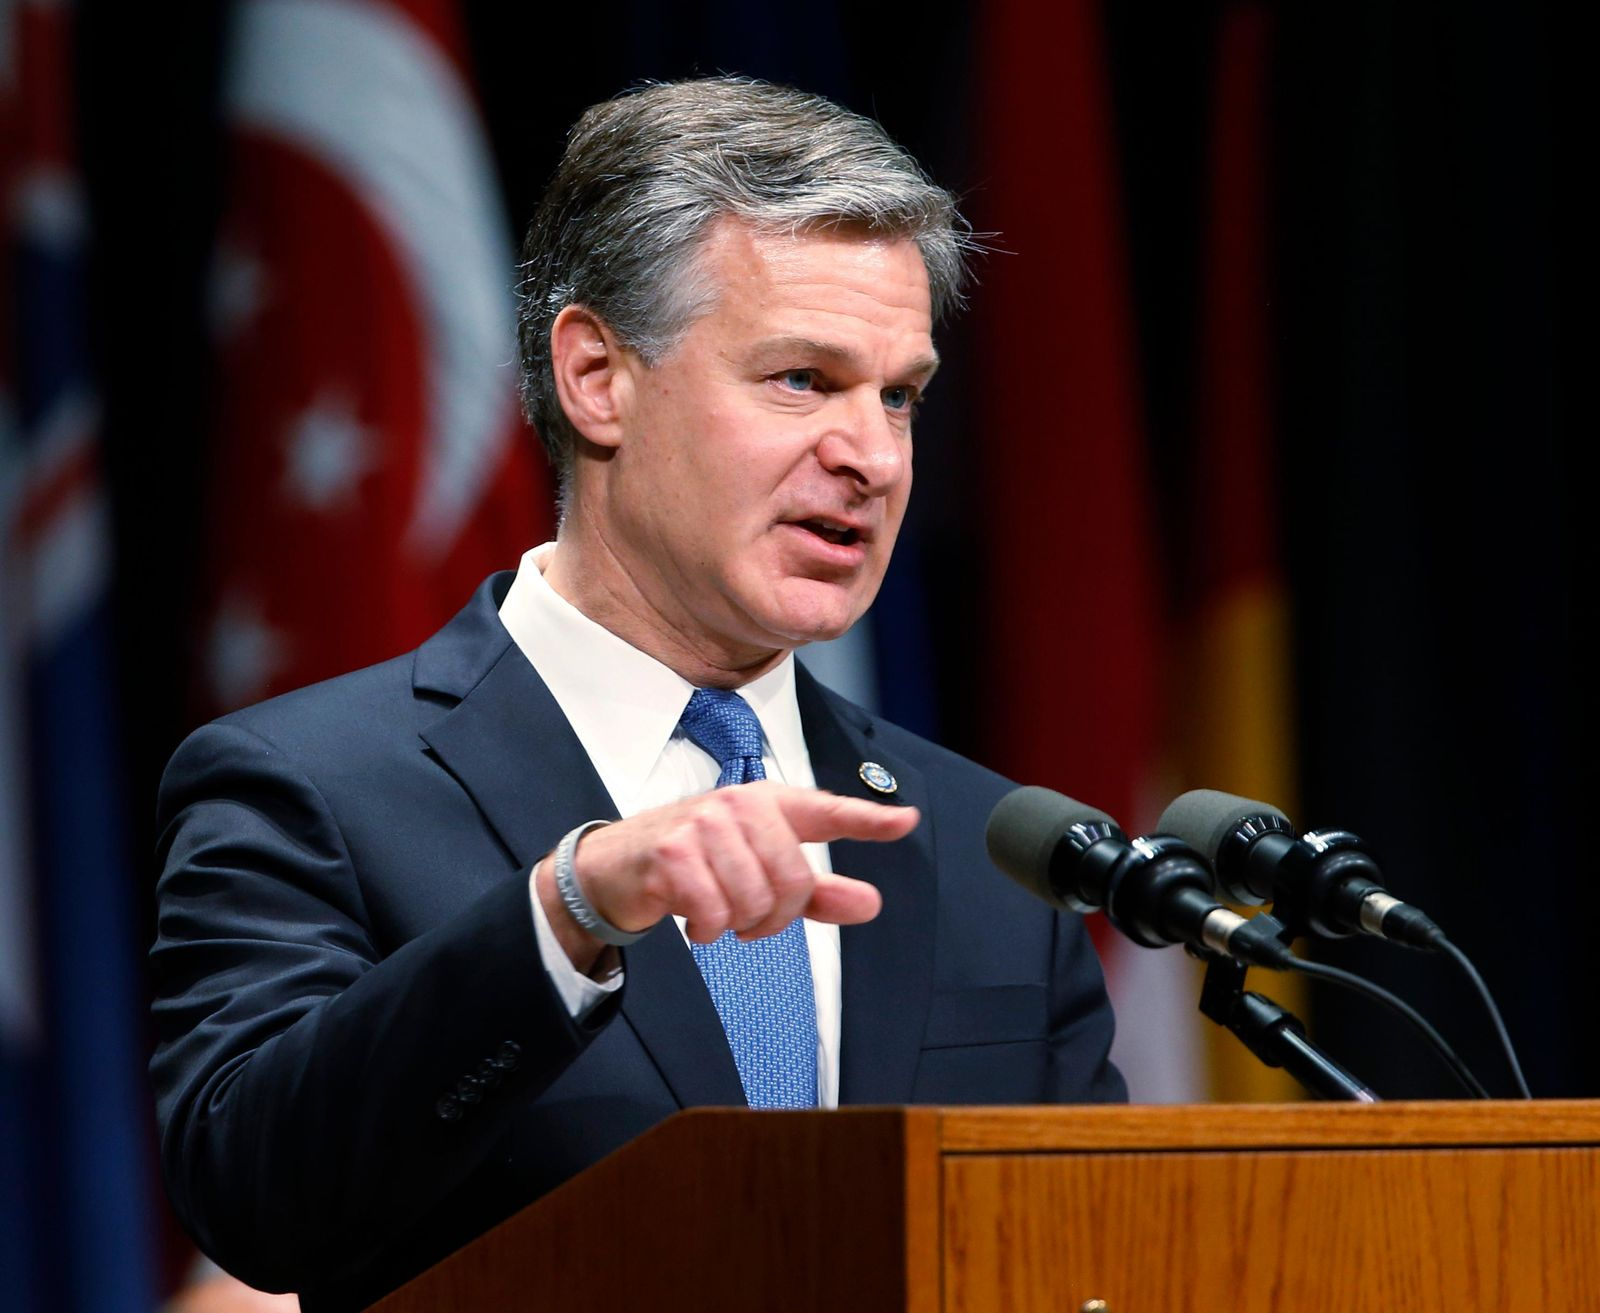 FILE - In this  June 7, 2019, file photo, Director of the Federal Bureau of Investigation, Christopher Wray, gestures as he speaks during a graduation ceremony for students of the Federal Bureau of Investigations National Academy at the FBI training facility in Quantico, Va. Wray is set to testify before a Senate committee in what could be a preview of the questioning special counsel Robert Mueller may face on Wednesday, July 24, 2019. (AP Photo/Steve Helber, File)